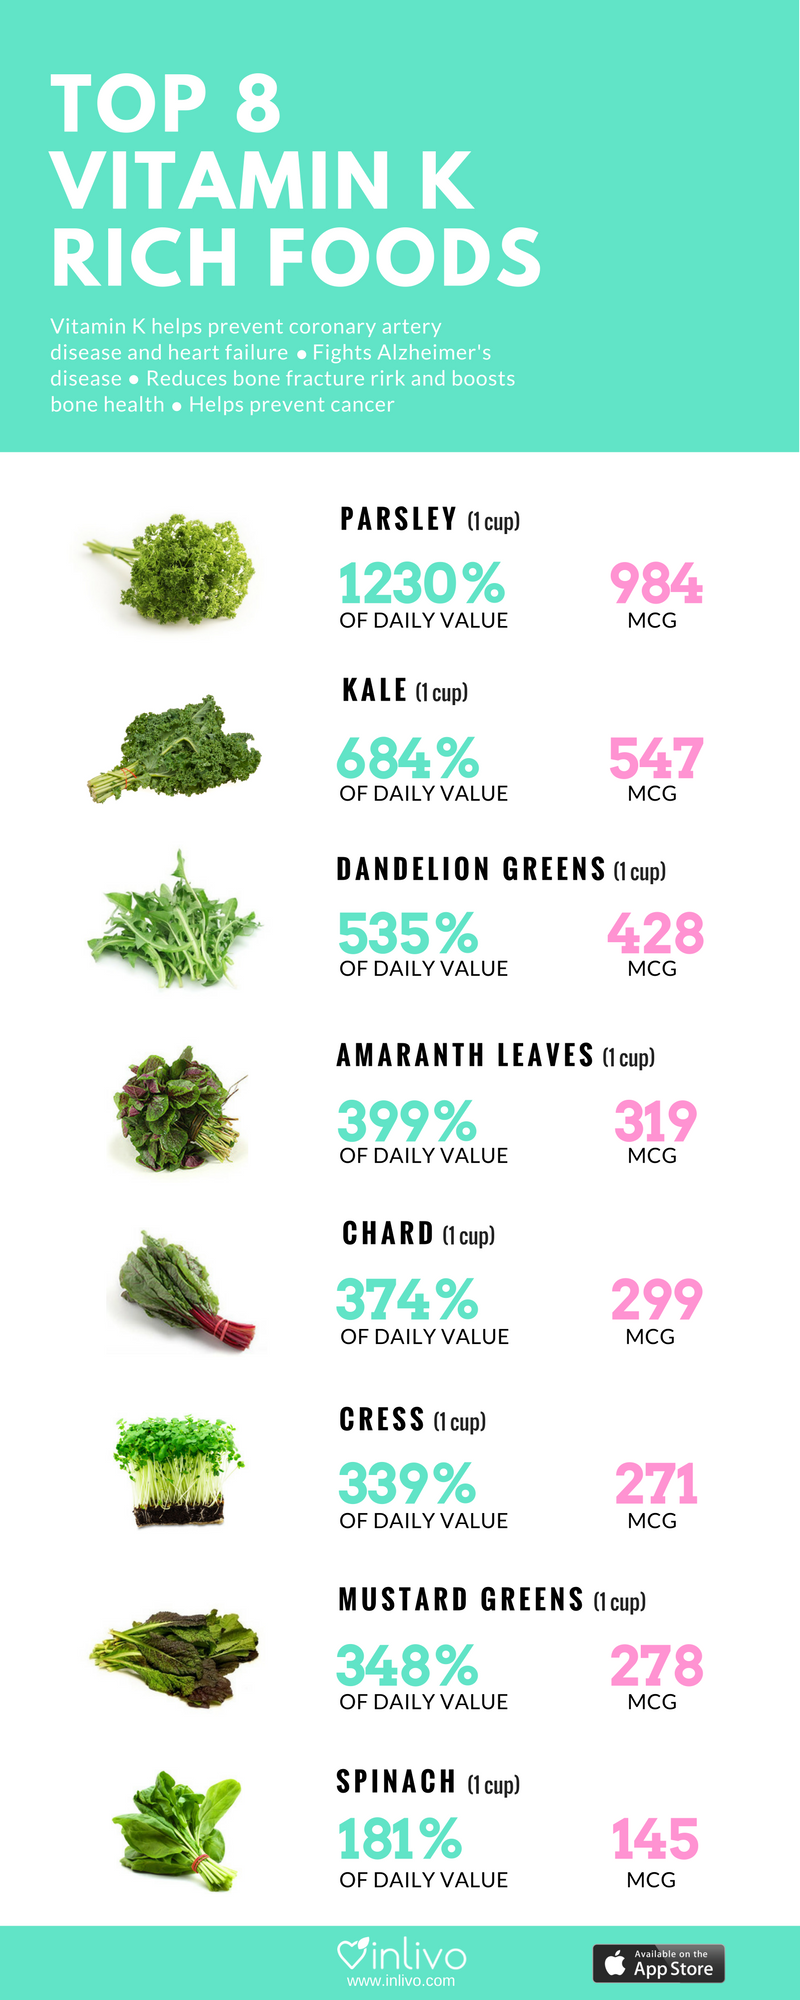 TOP 8 VITAMIN K RICH FOODS